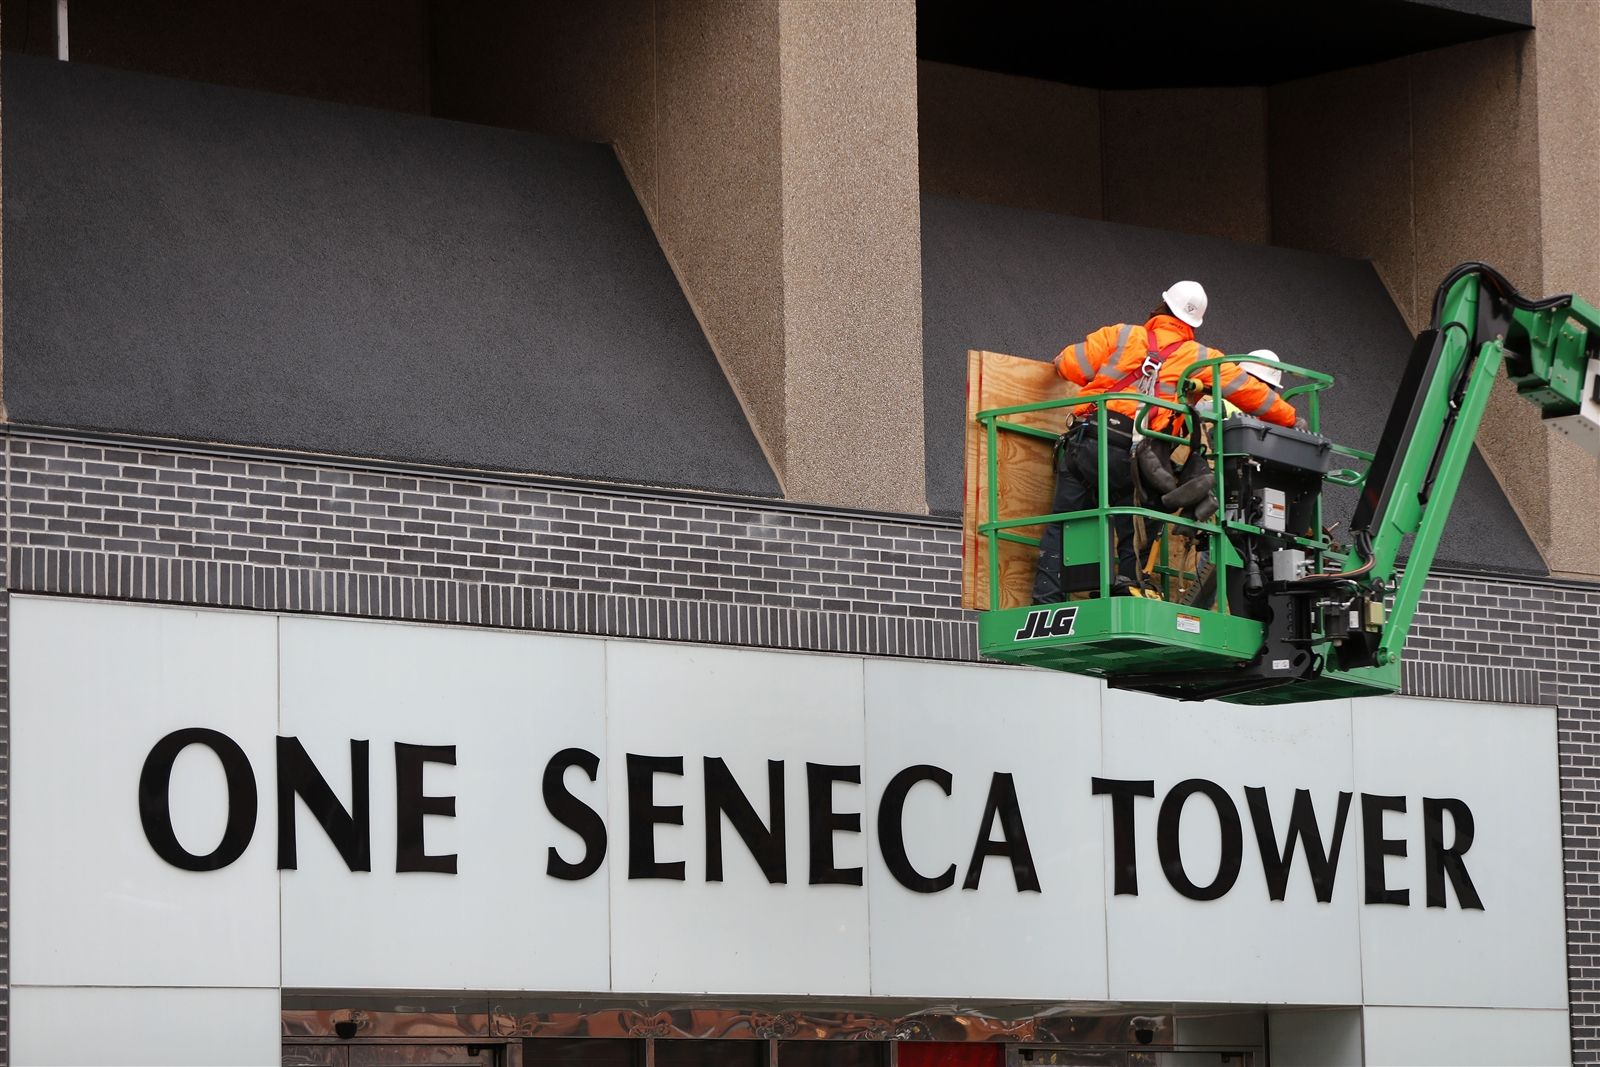 Crews continue the renovation at One Seneca Tower in Buffalo on May 14.